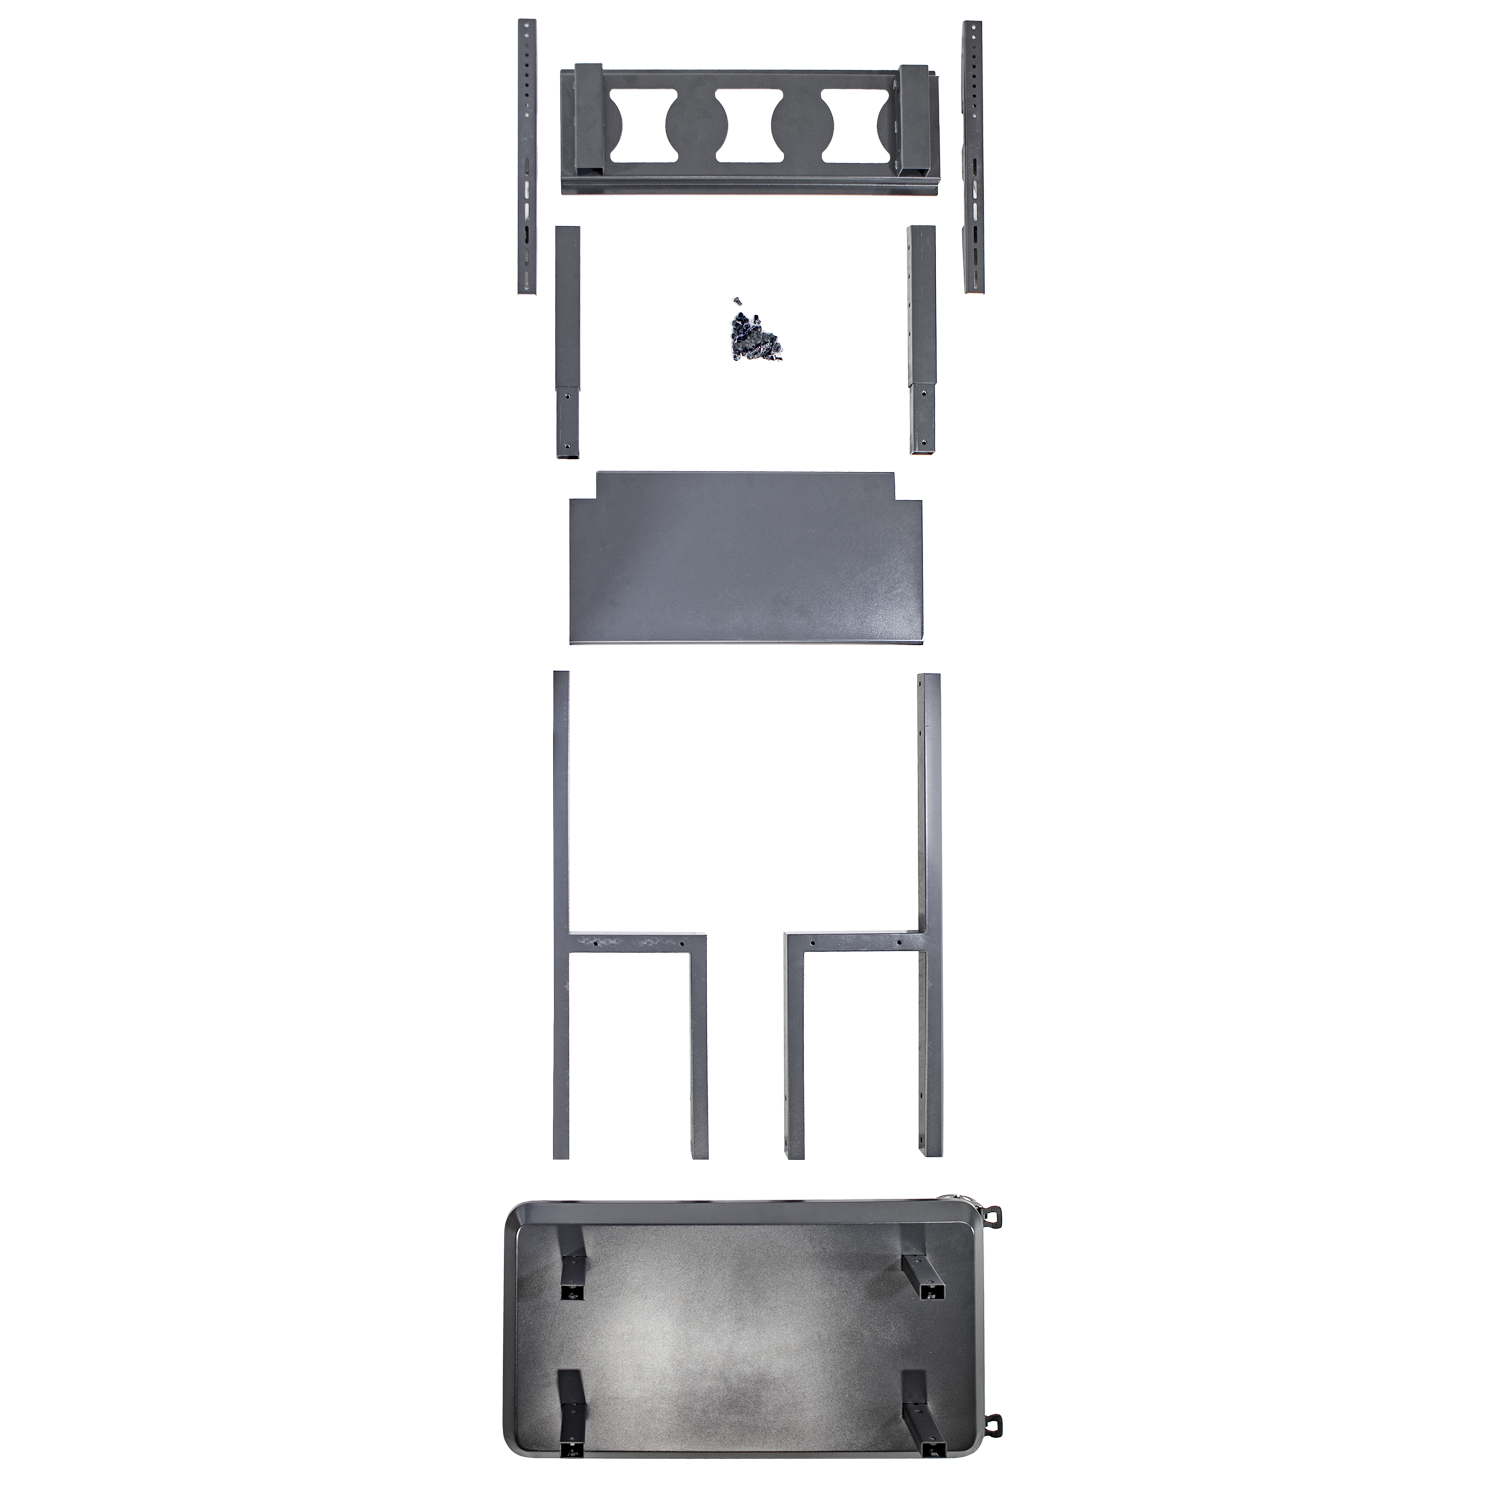 Anywhere Cart AC-STAND: Interactive Flat Panel Cart / Stand - Top view of parts image